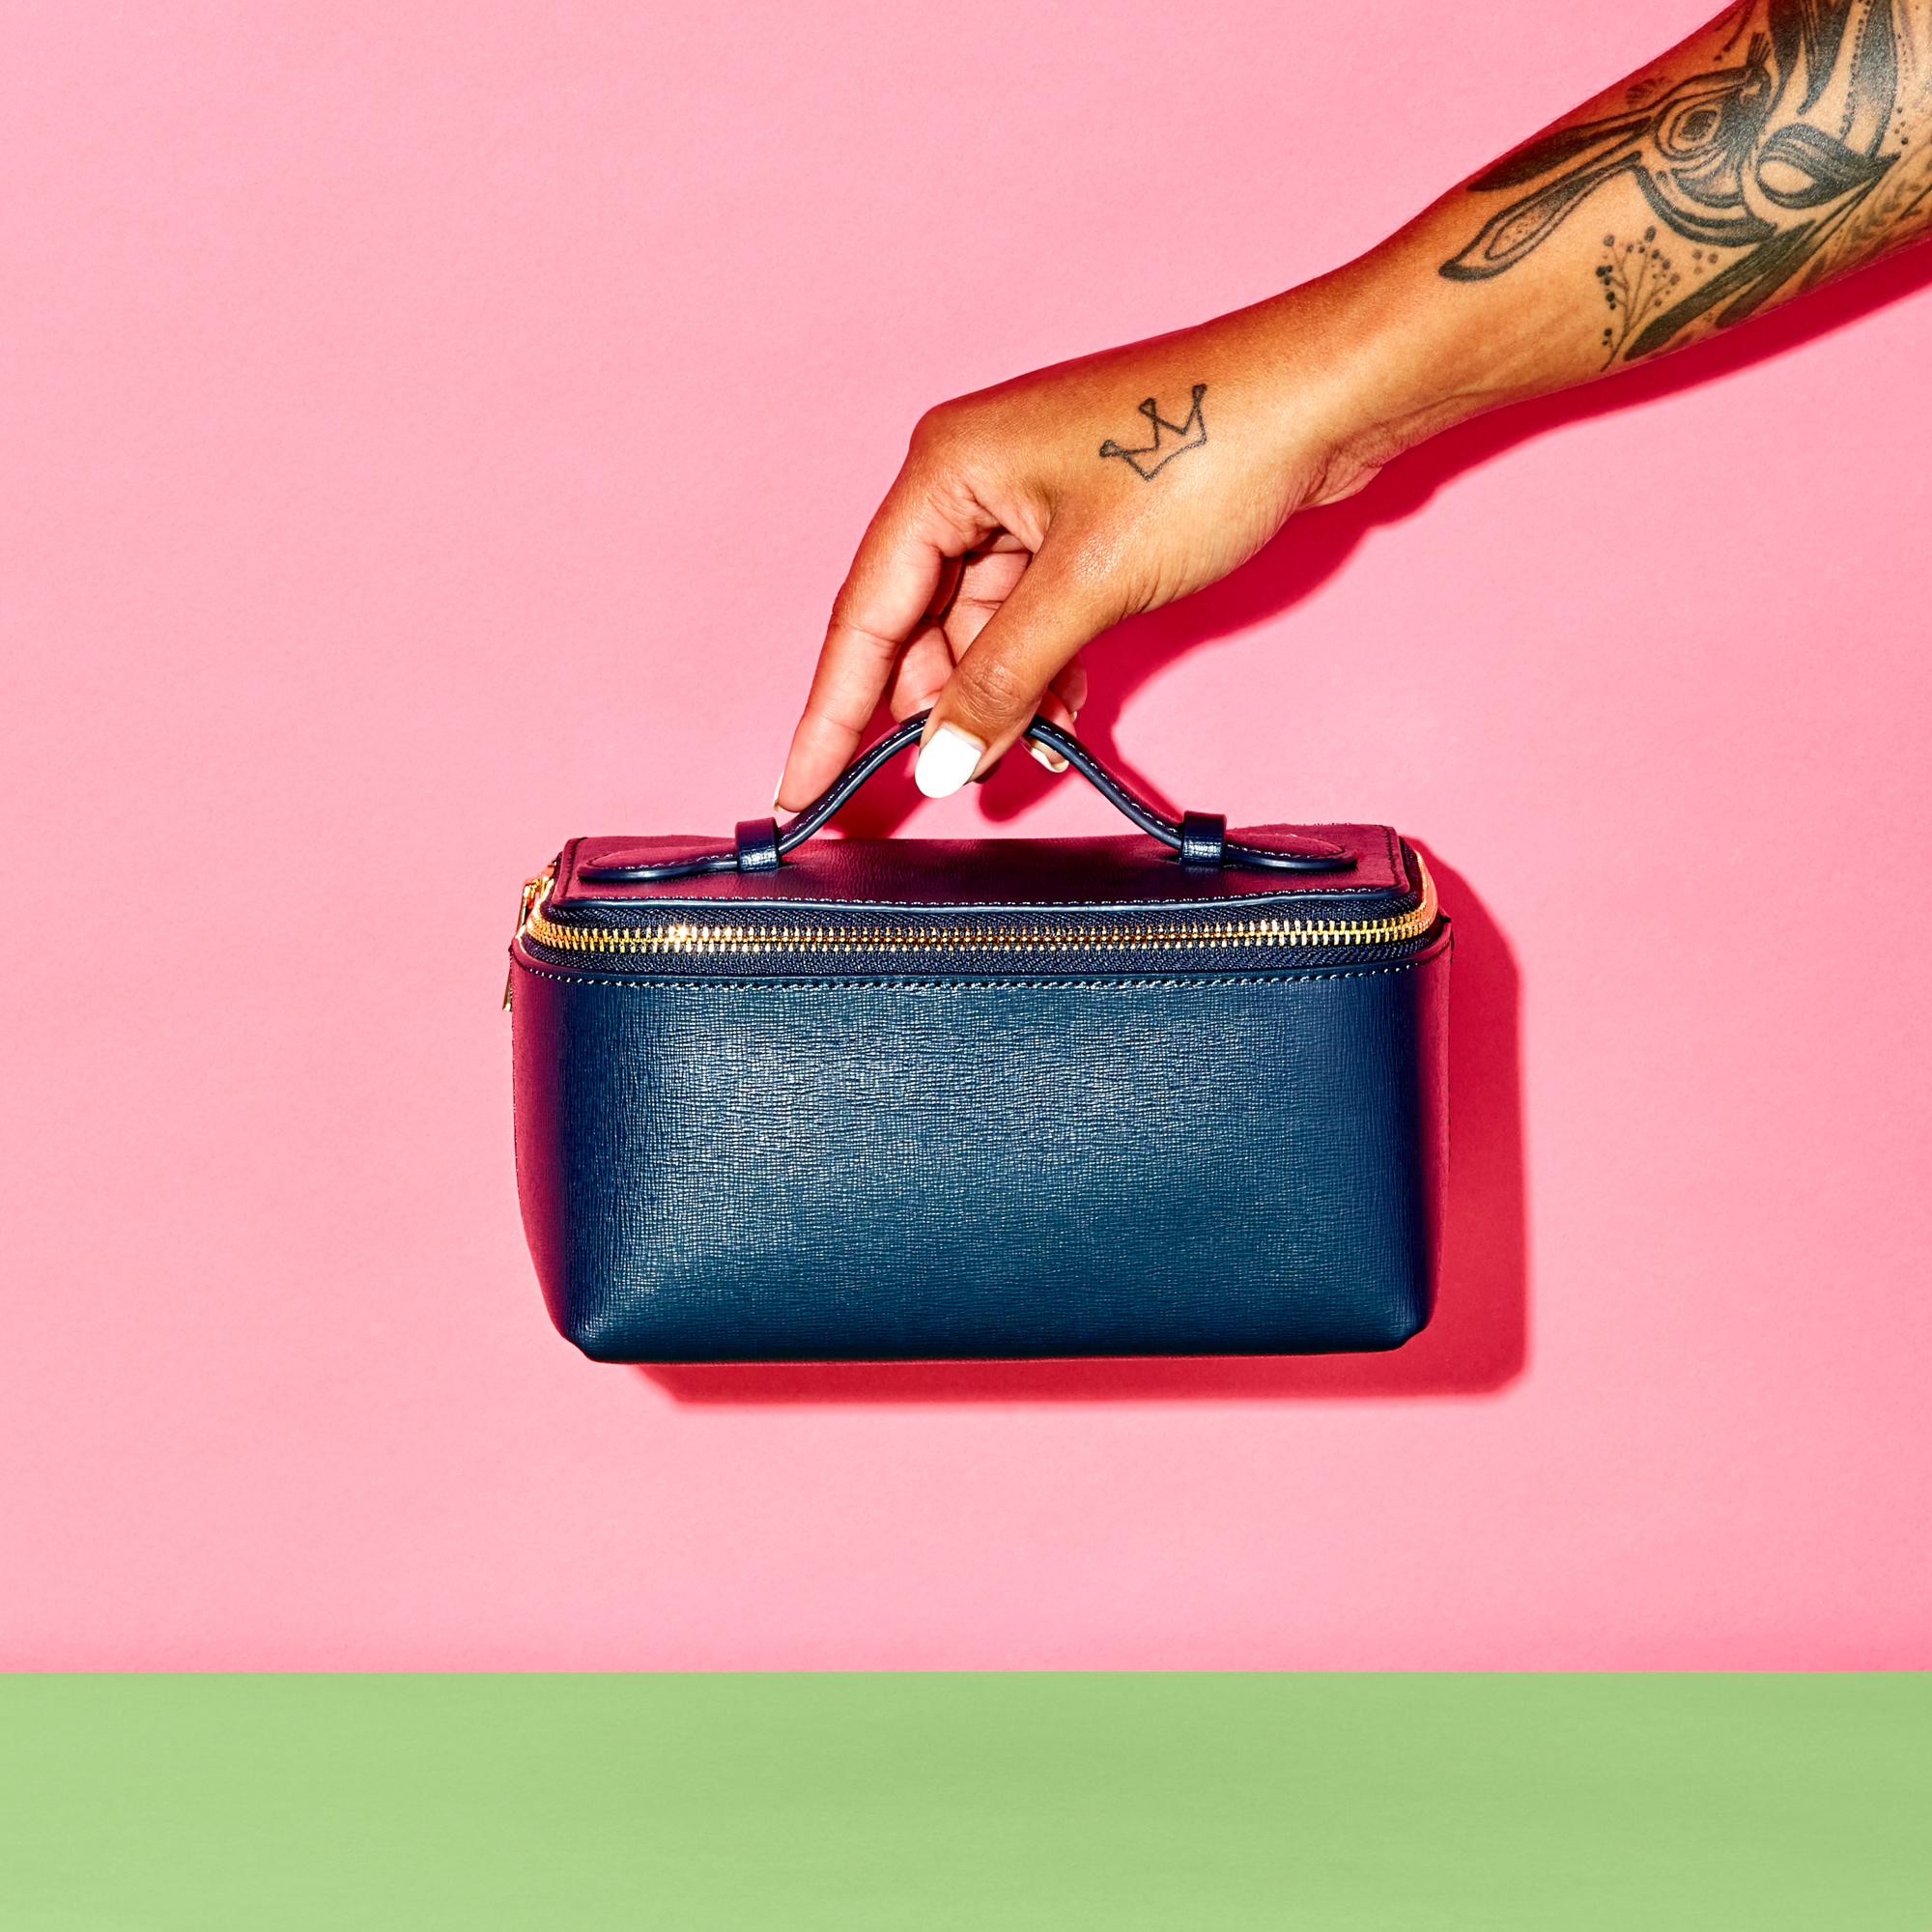 A hand holding a small blue leather purse.